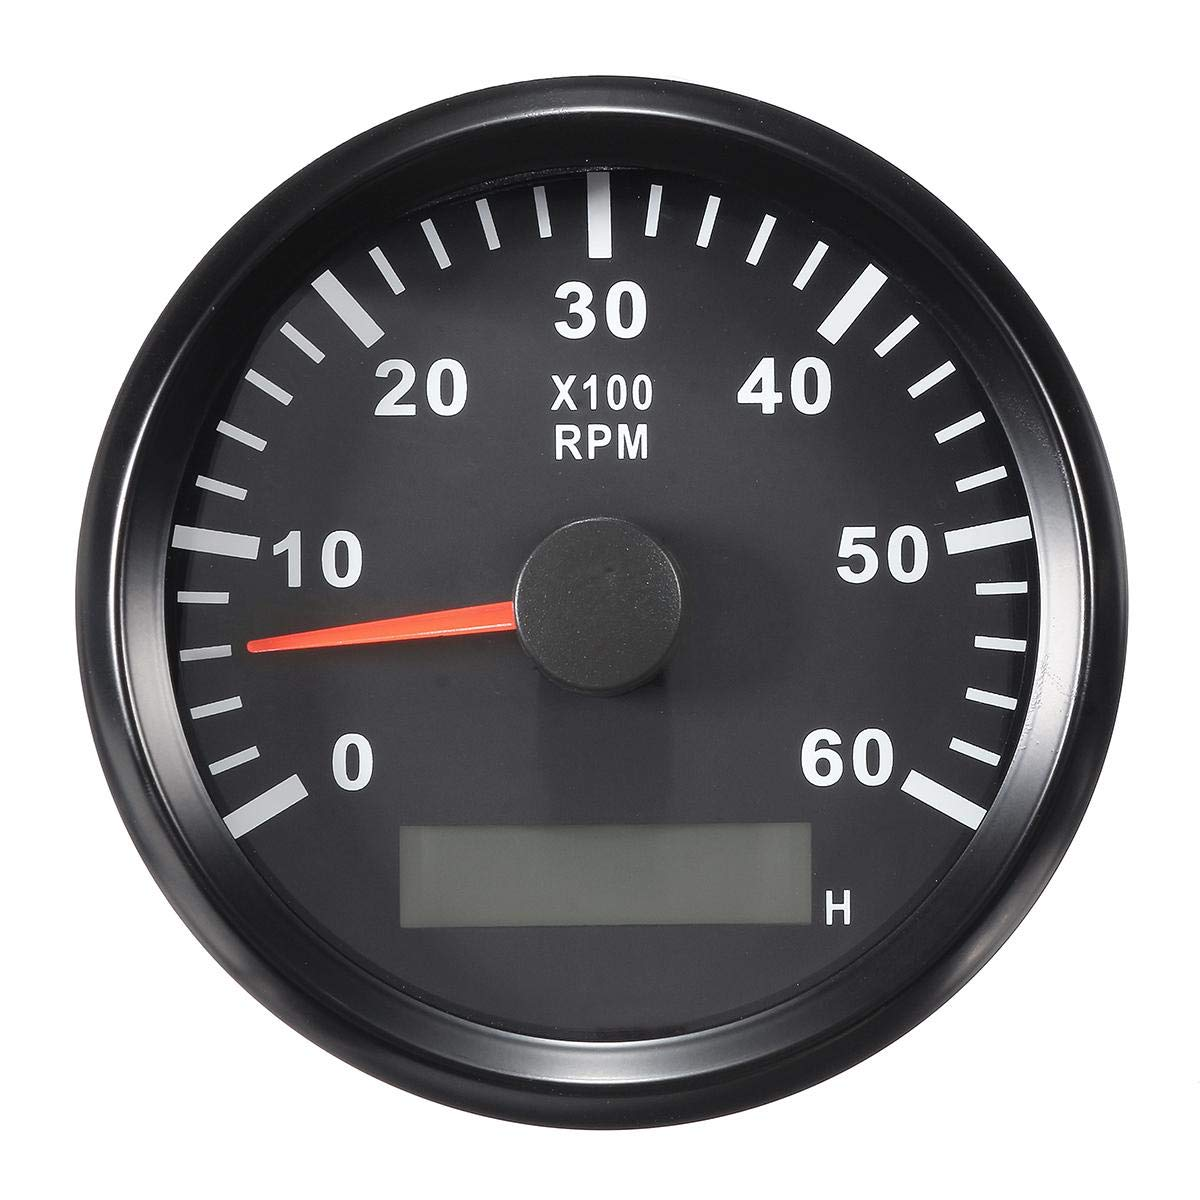 ELING Tachometer RPM Tacho Gauge with Hour Meter for Car Truck Boat Yacht 0-6000RPM 85mm with Backlight by ELING